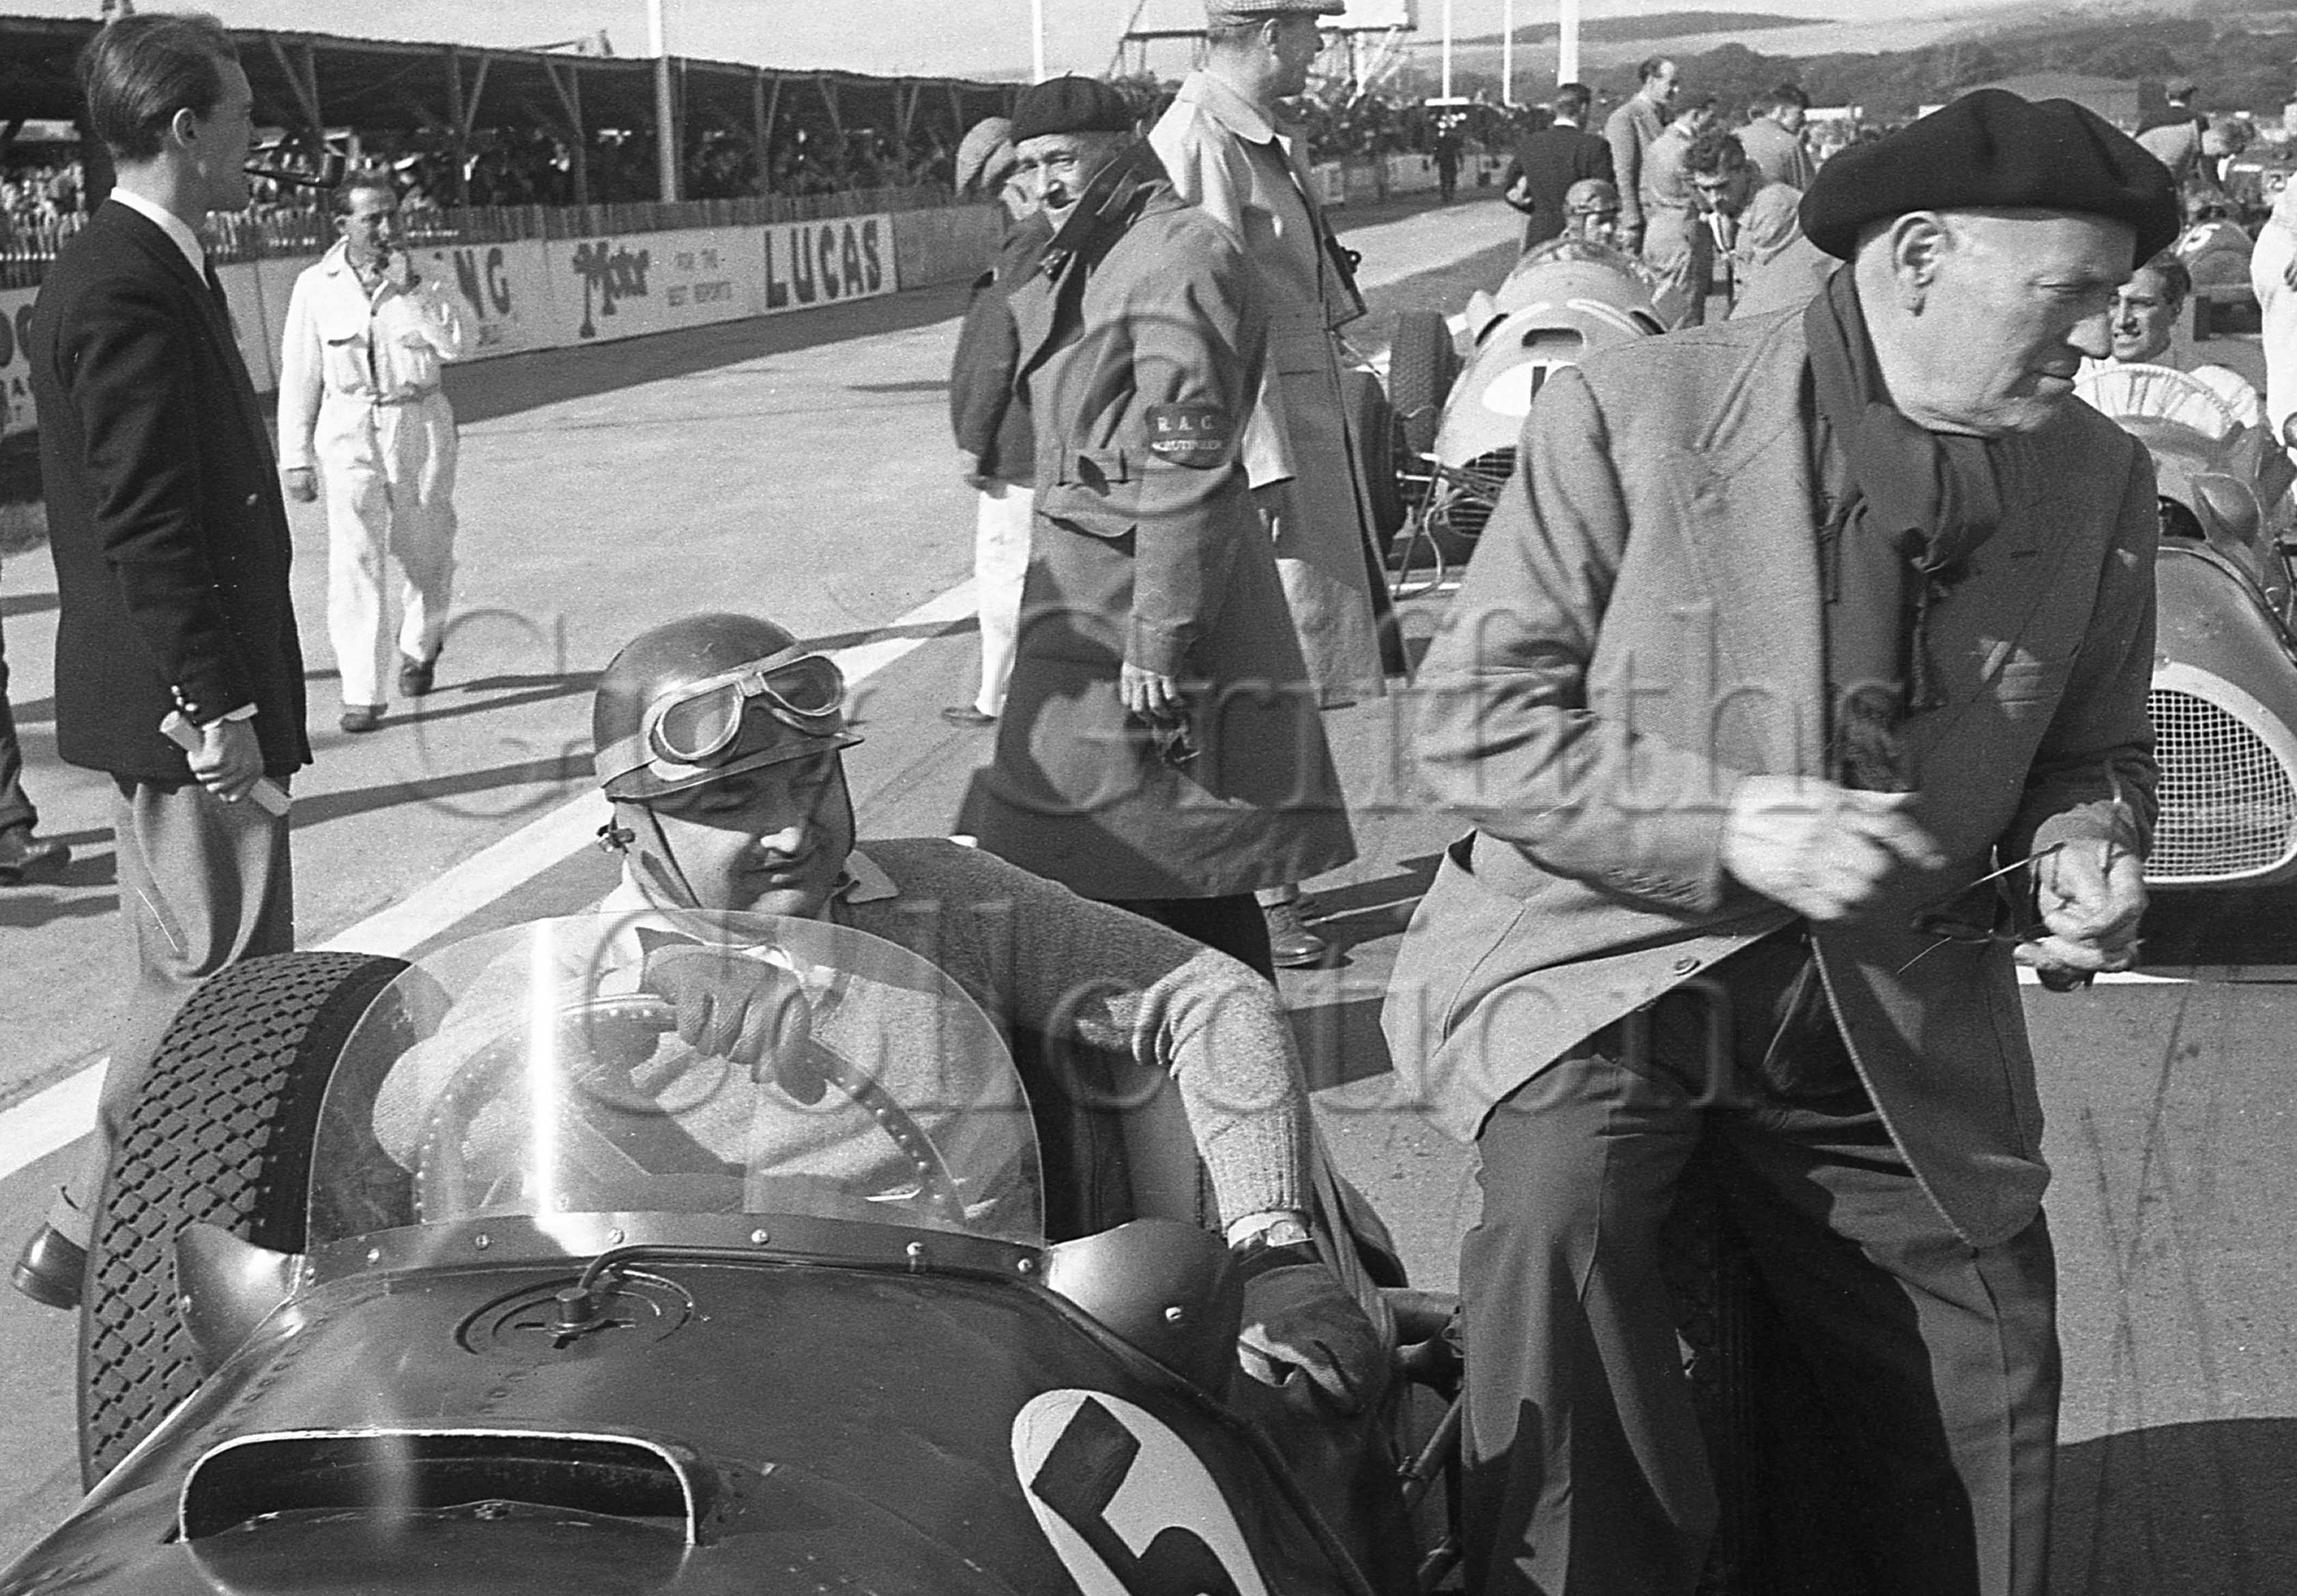 62-421–F-Gonzalez–BRM–Goodwood–27-09-1952.jpg - The Guy Griffiths Collection